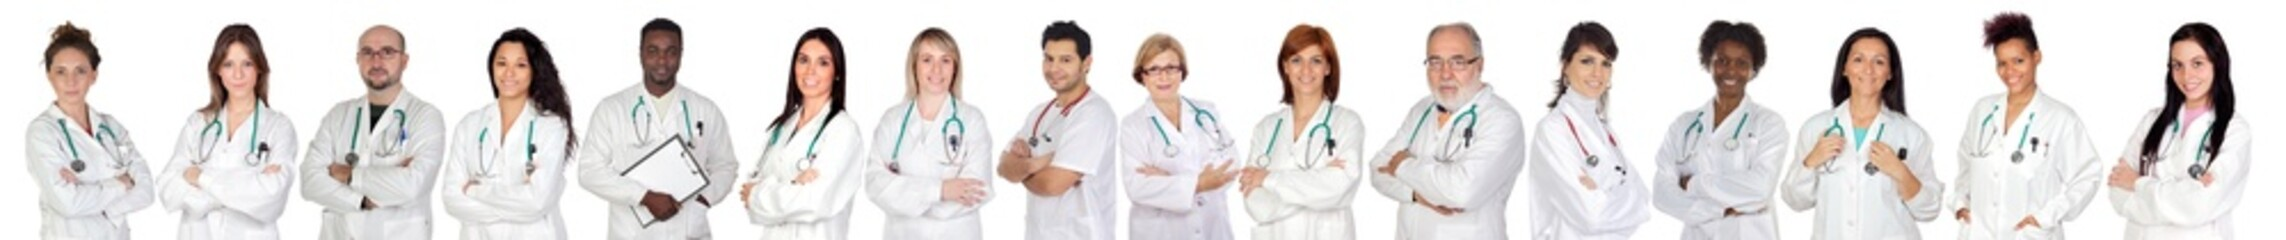 Medical team with white uniform